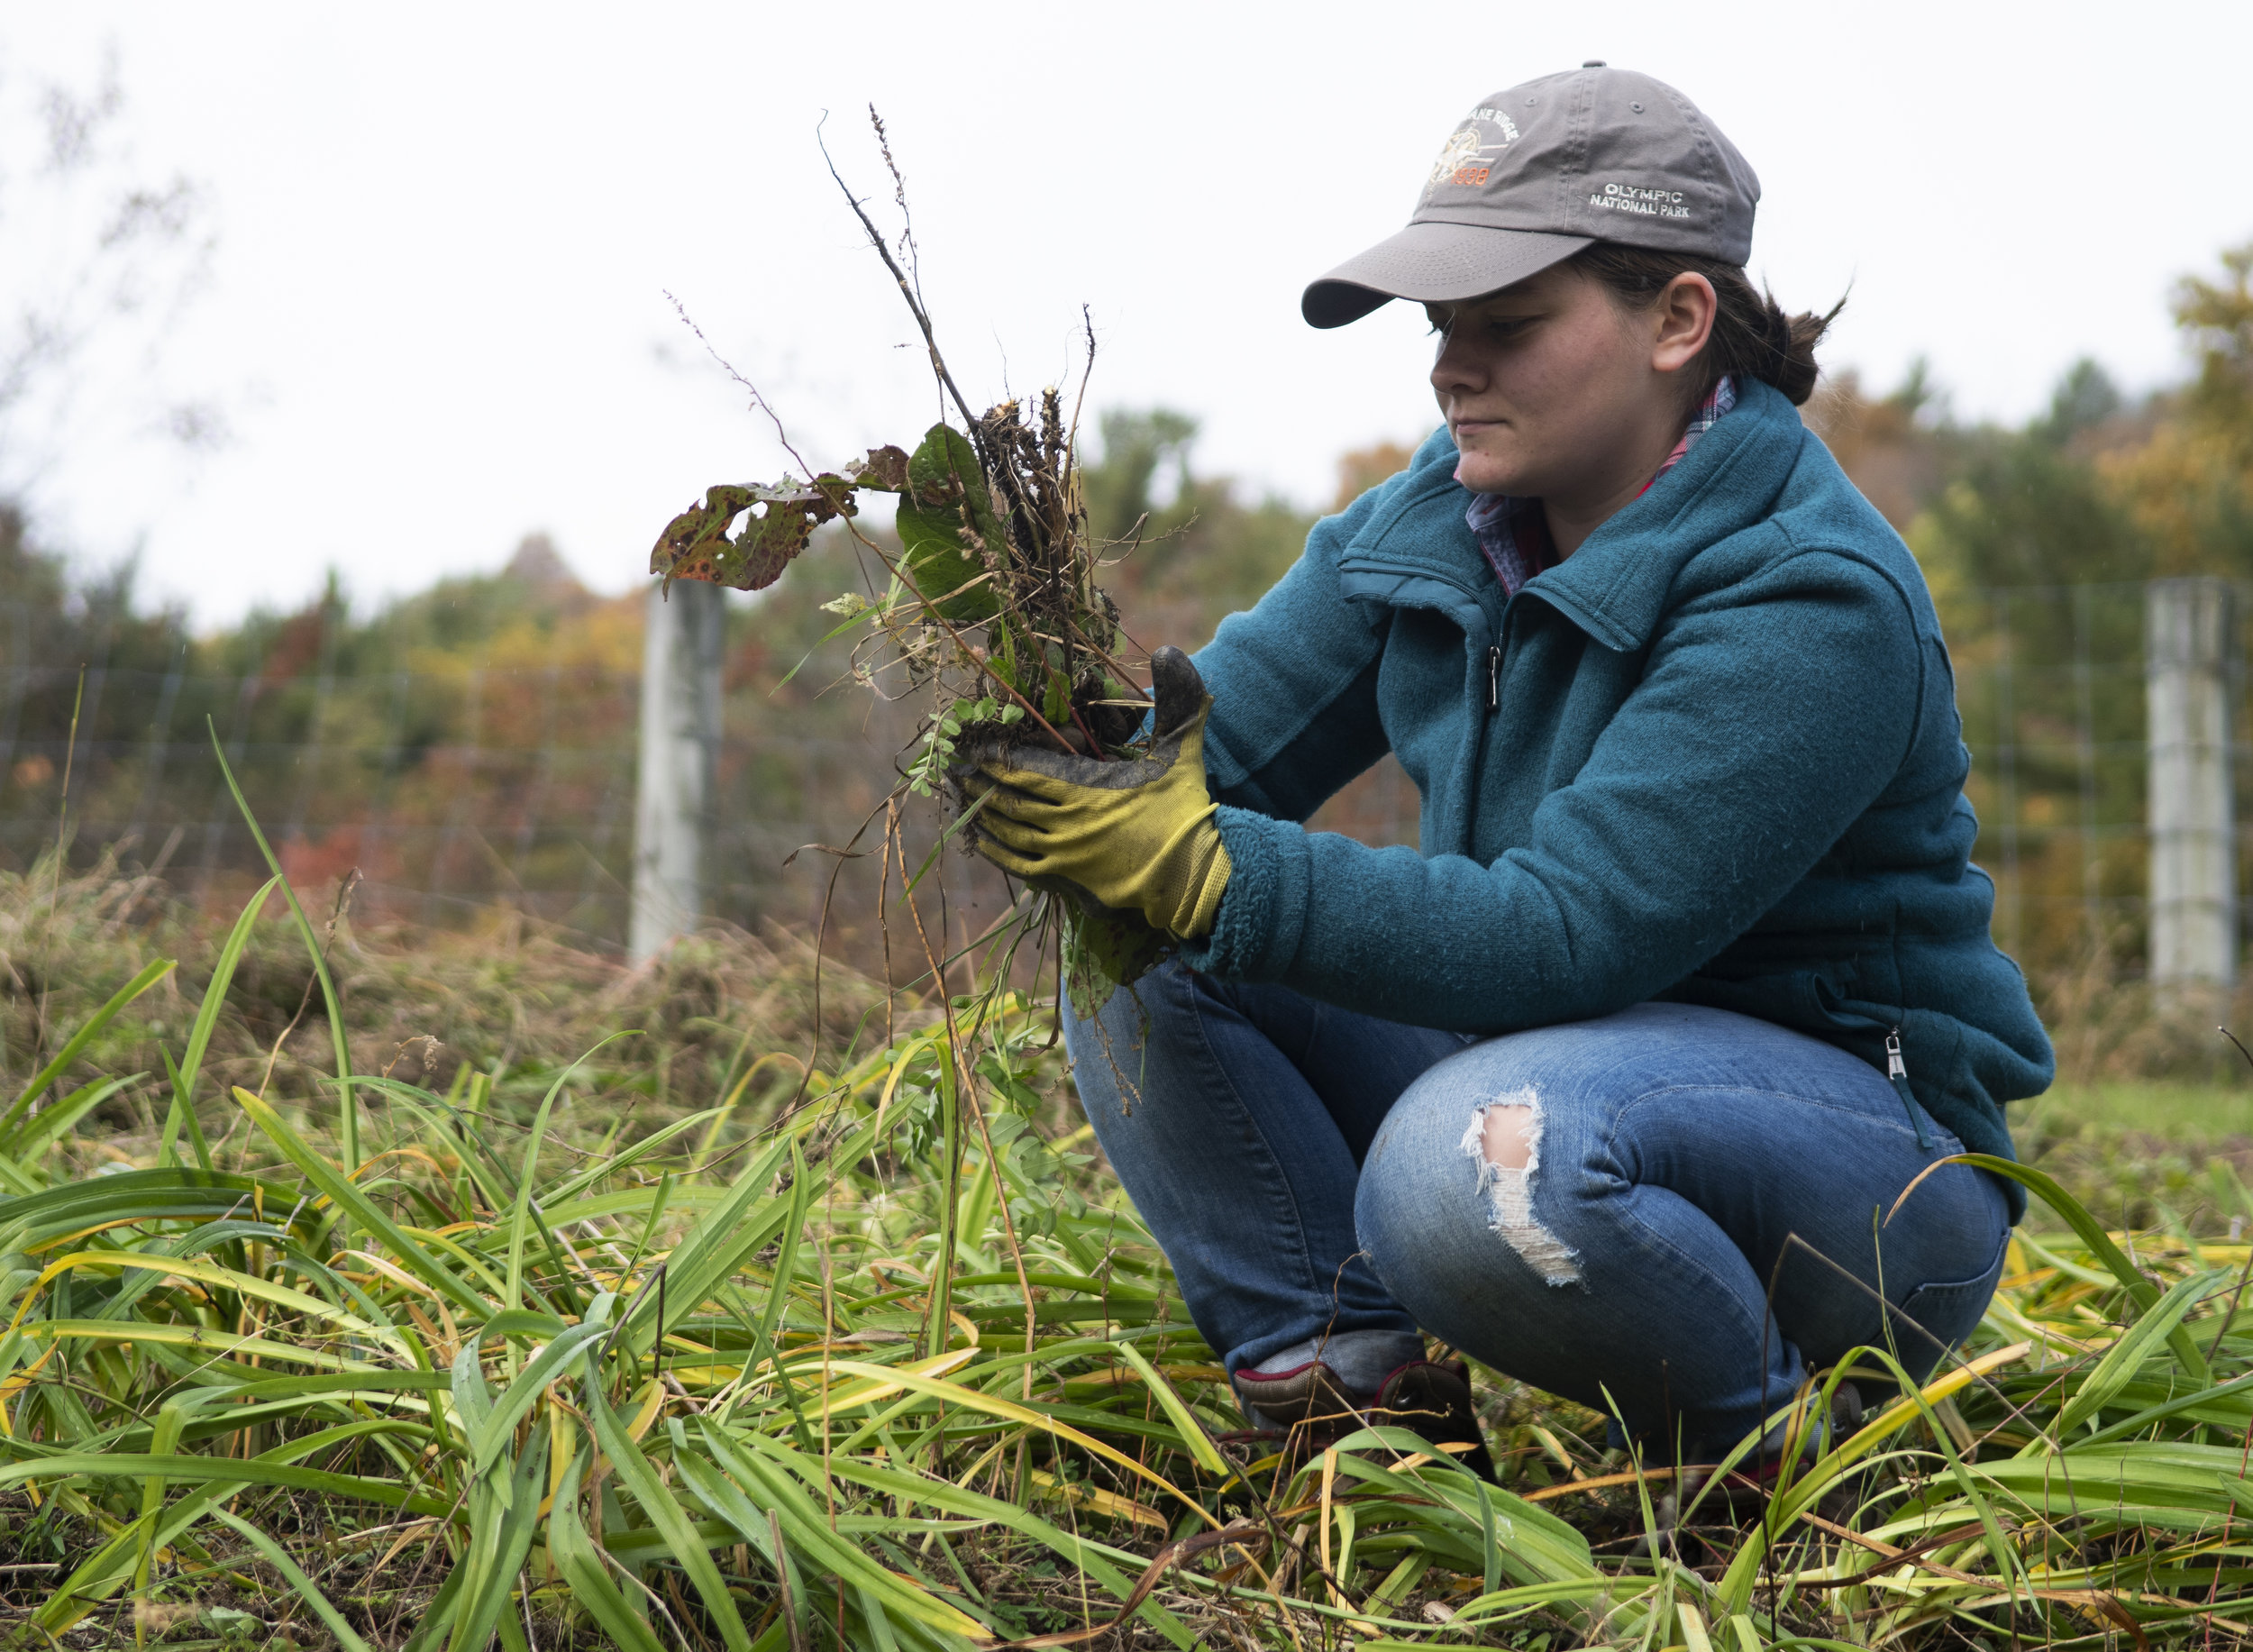 Deanna Homan (junior-plant science) pulls weeds during the Crop Mob event at The Barn on Valley View Road in Bellefonte on Nov. 3, 2018. | Photo by: Noah Riffe